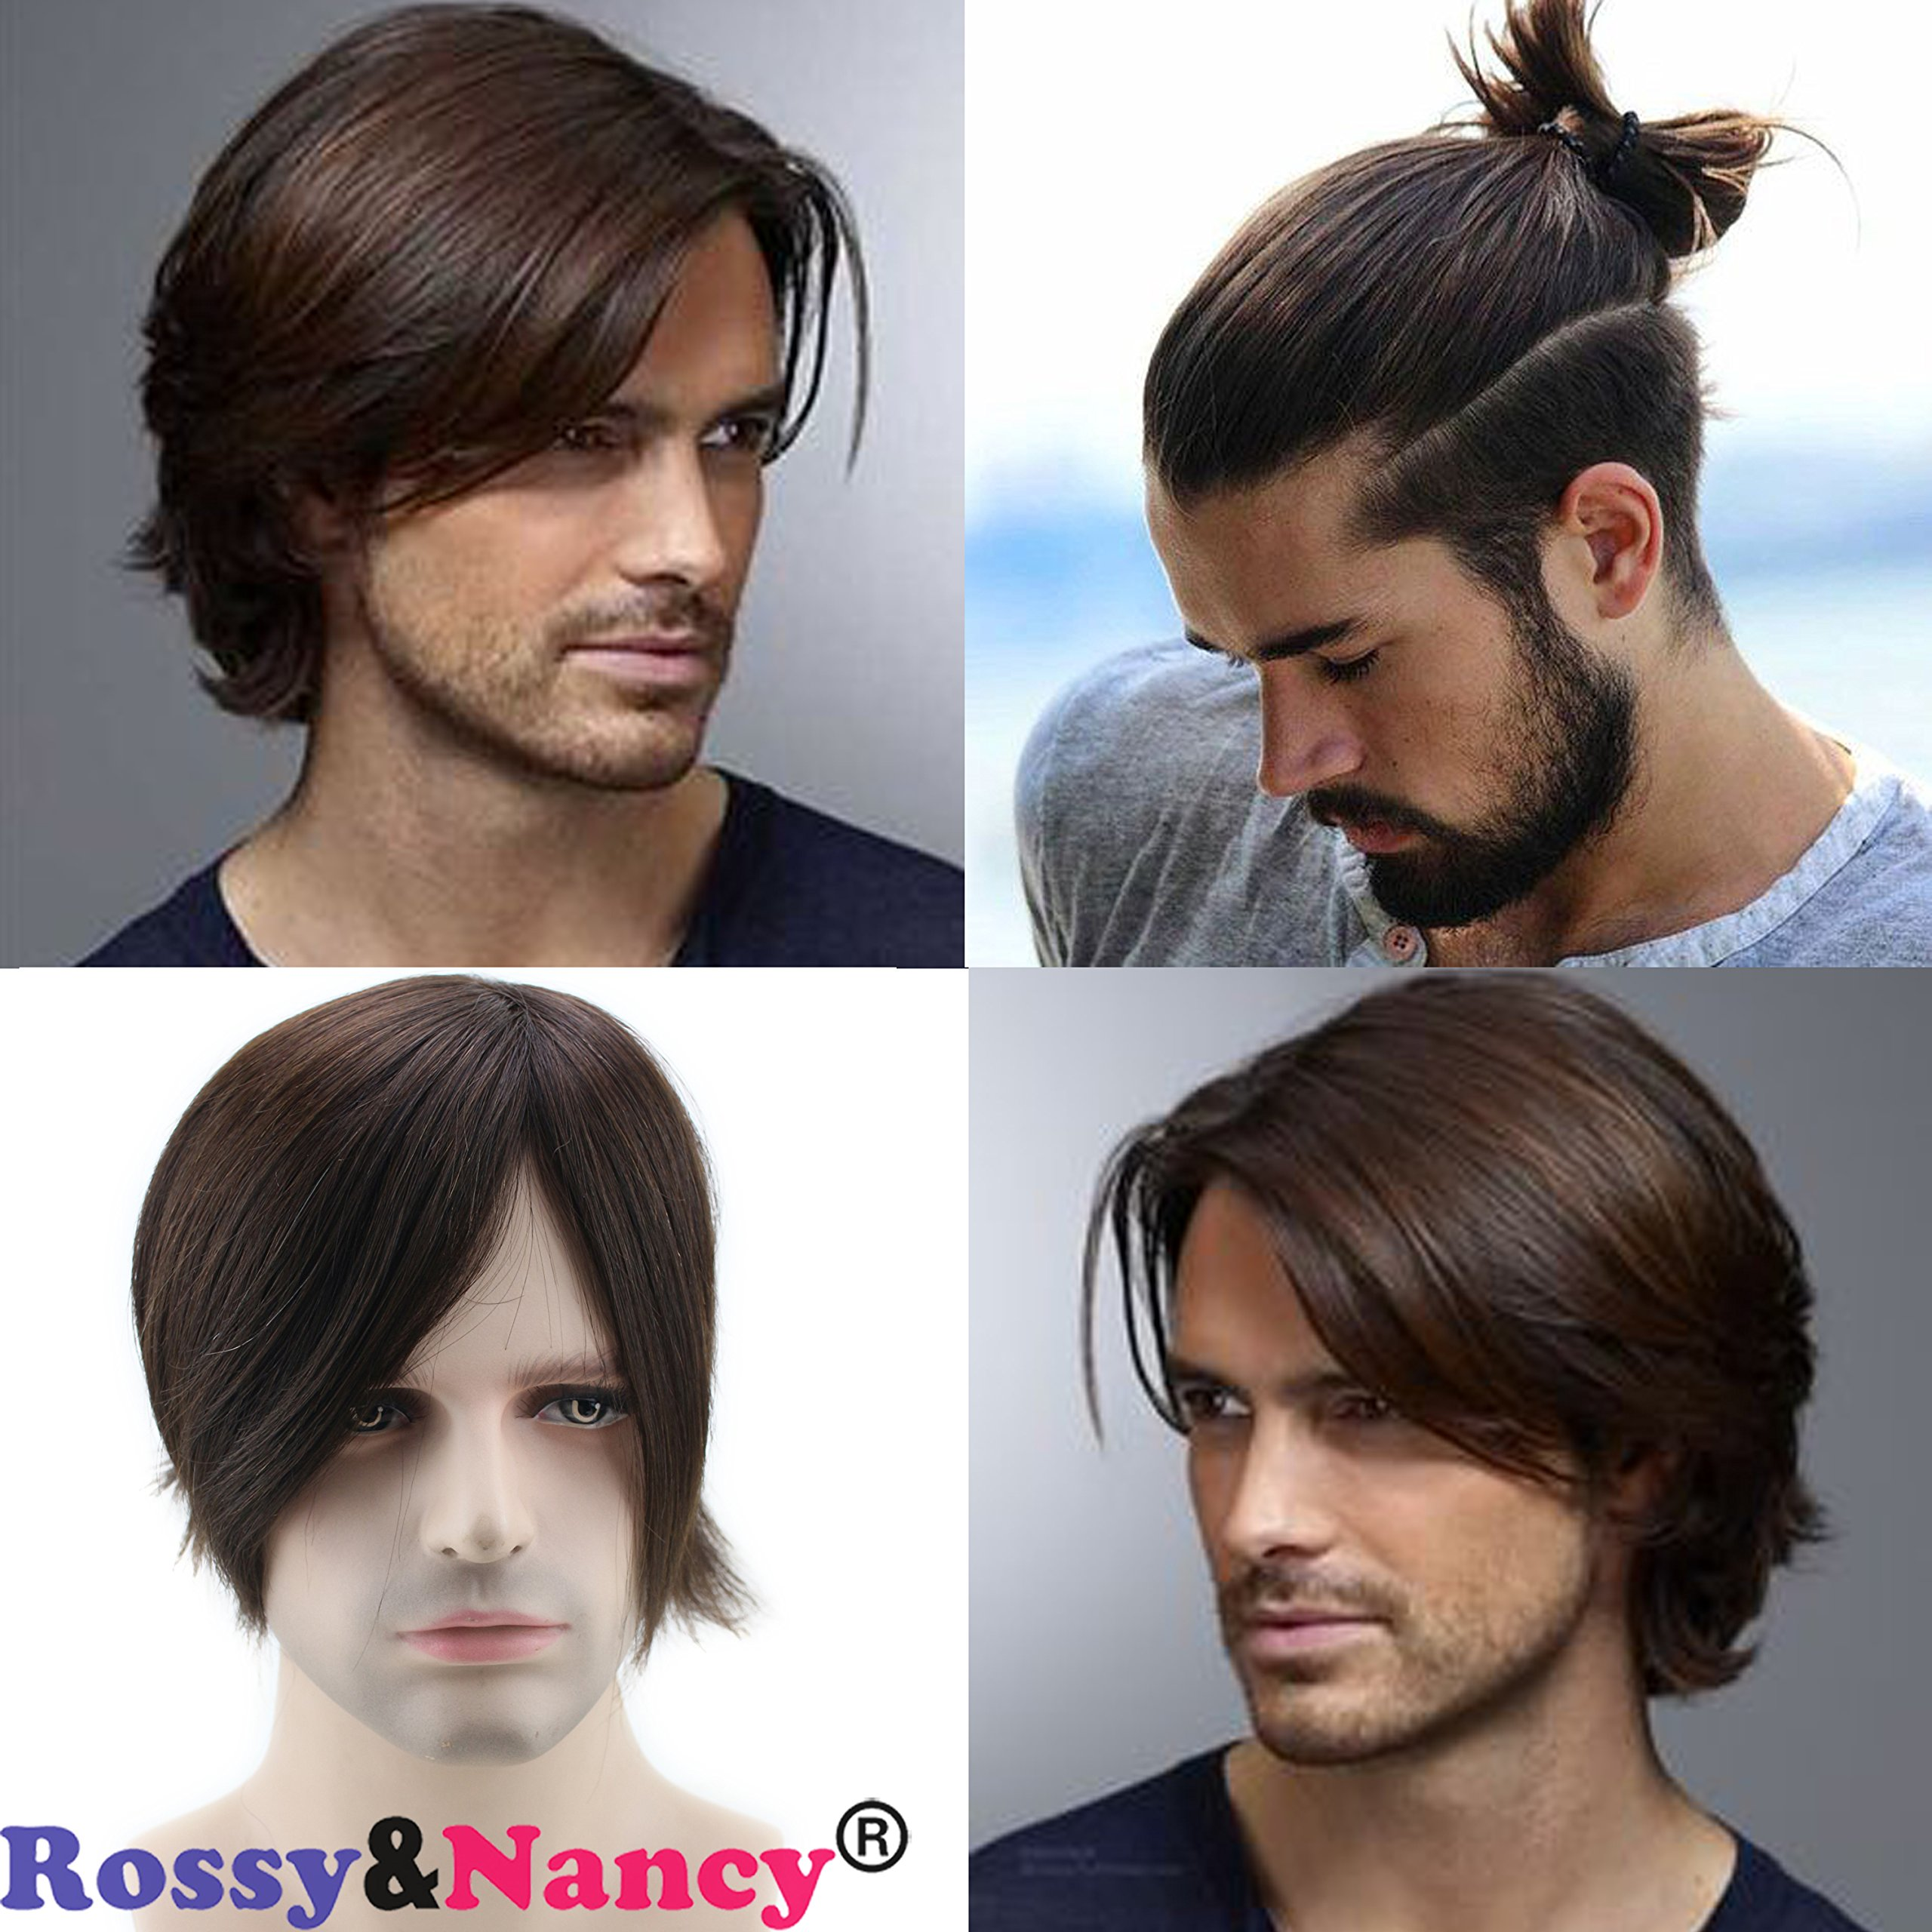 Rossy&Nancy Skin Mens Human Hair Wigs Toupee Mono Base with Thin Skin Hairpieces for Man #3 Brown Color 130% Density 6''x8'' by Rossy&Nancy